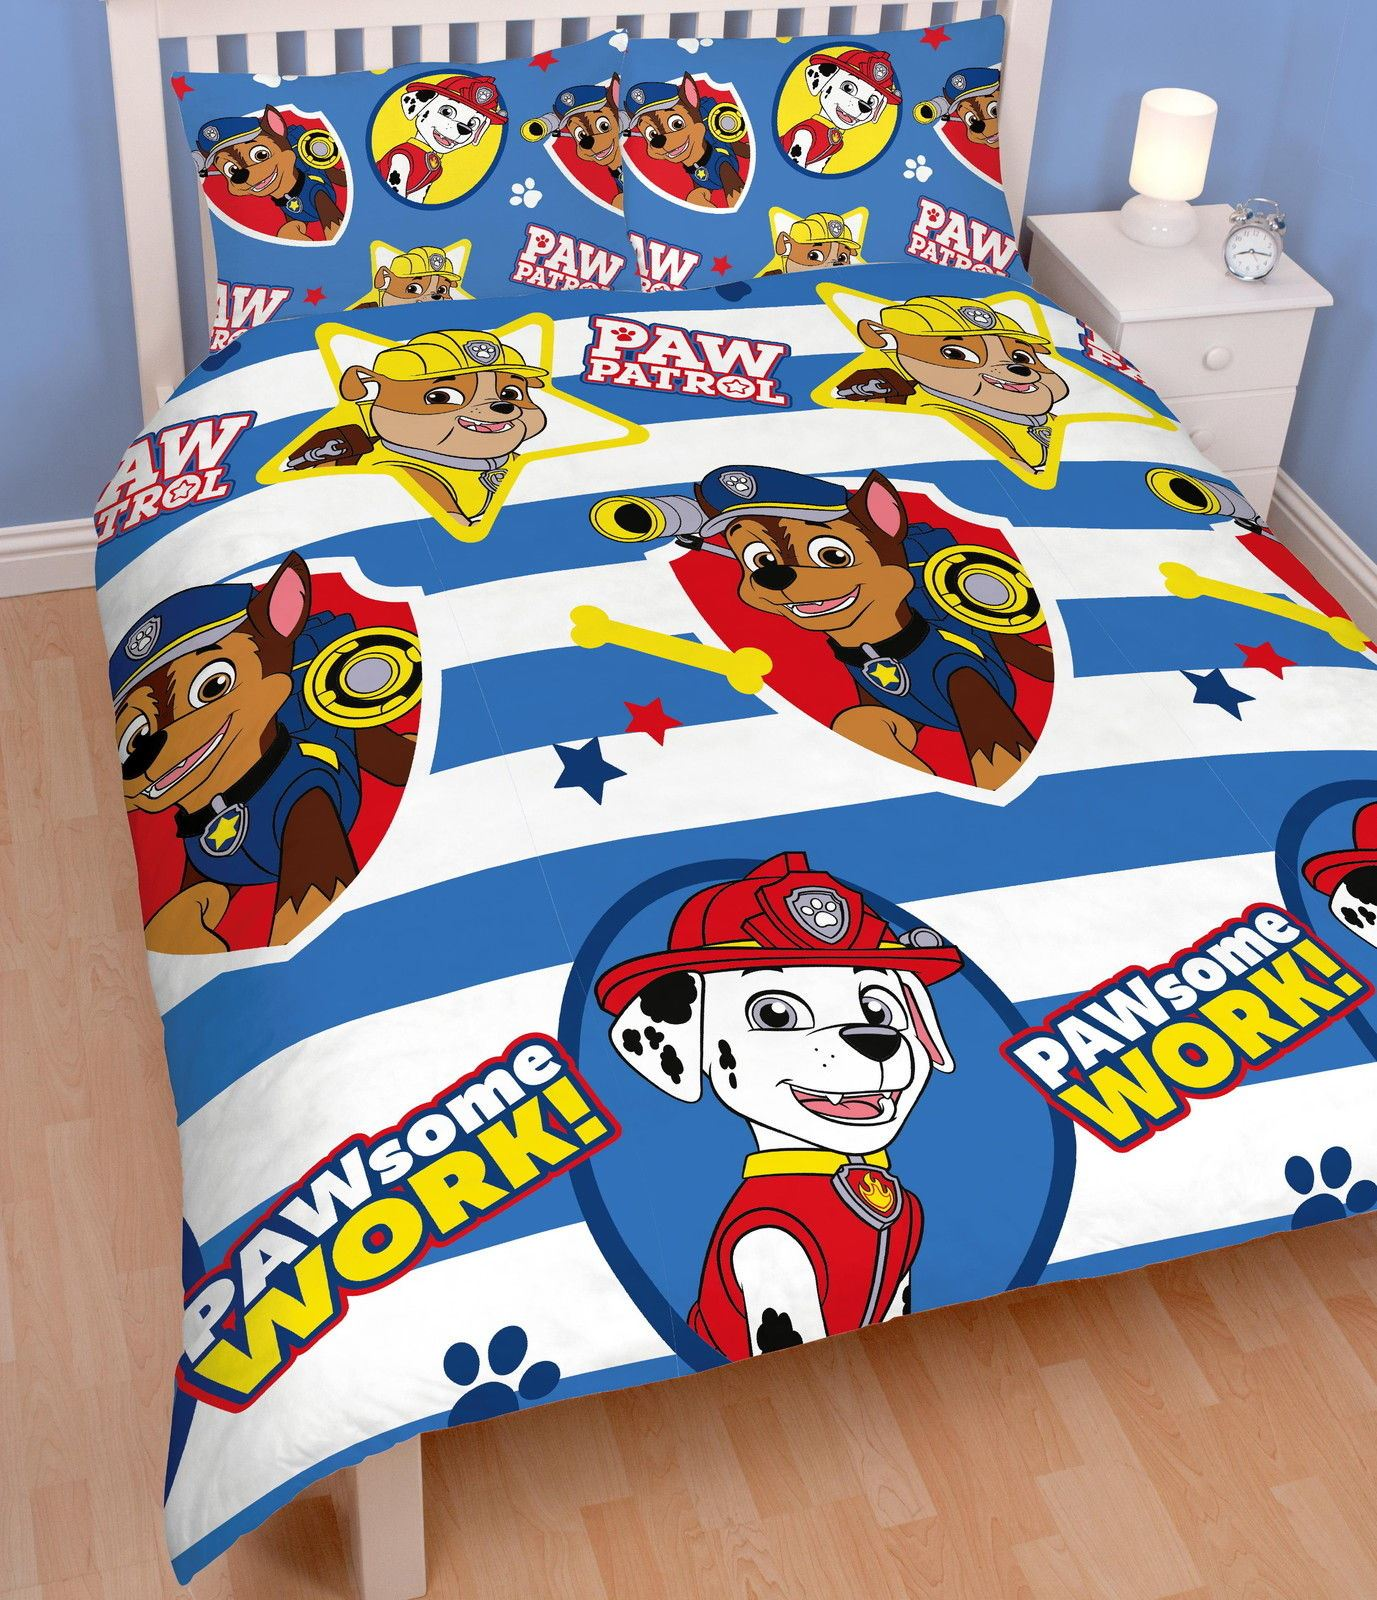 Official-Paw-Patrol-Licensed-Duvet-Covers-Single-Double-Chase-Skye-Marshall thumbnail 22